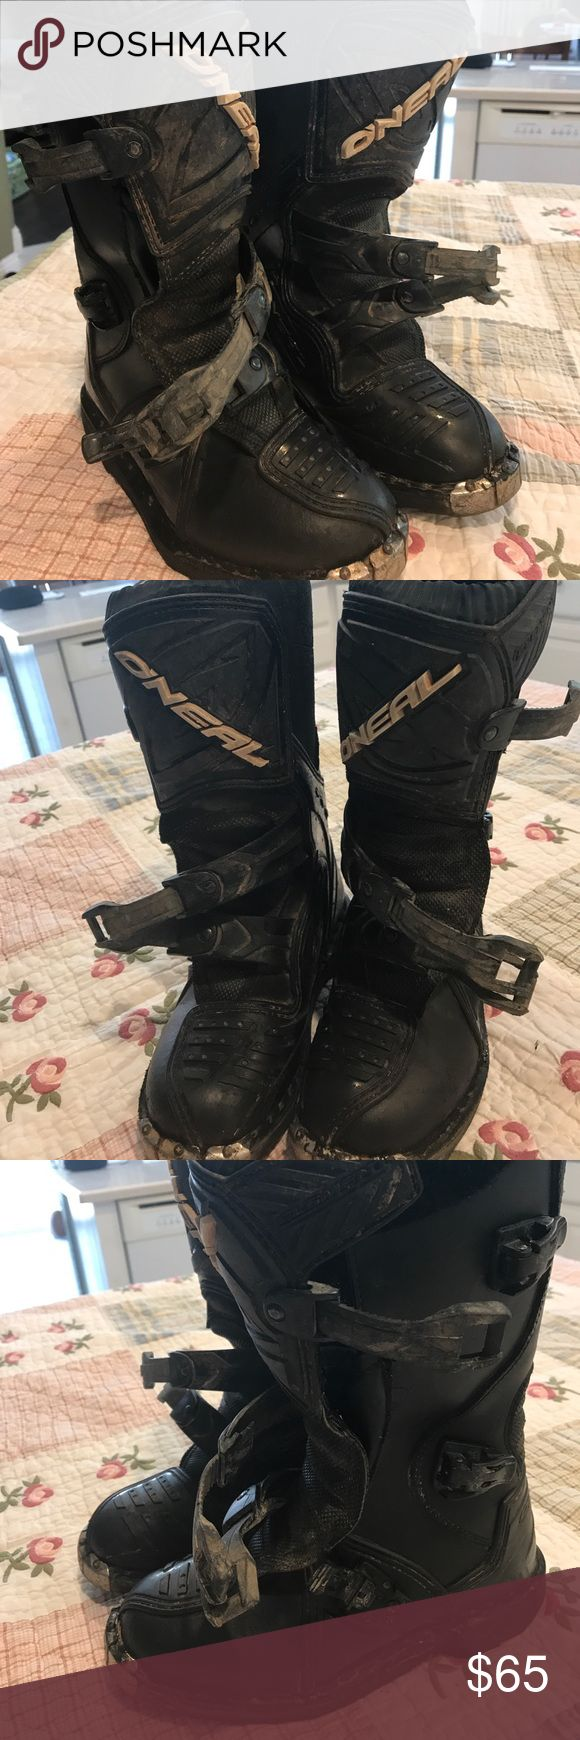 O'Neil dirt bike boots size 3 Has few used with dirt or mad around it that I tried to cleared most of it but still needs some more work but otherwise no hole no tear noted just scratches and little rust on the toe tip metal part. oneil Shoes Boots